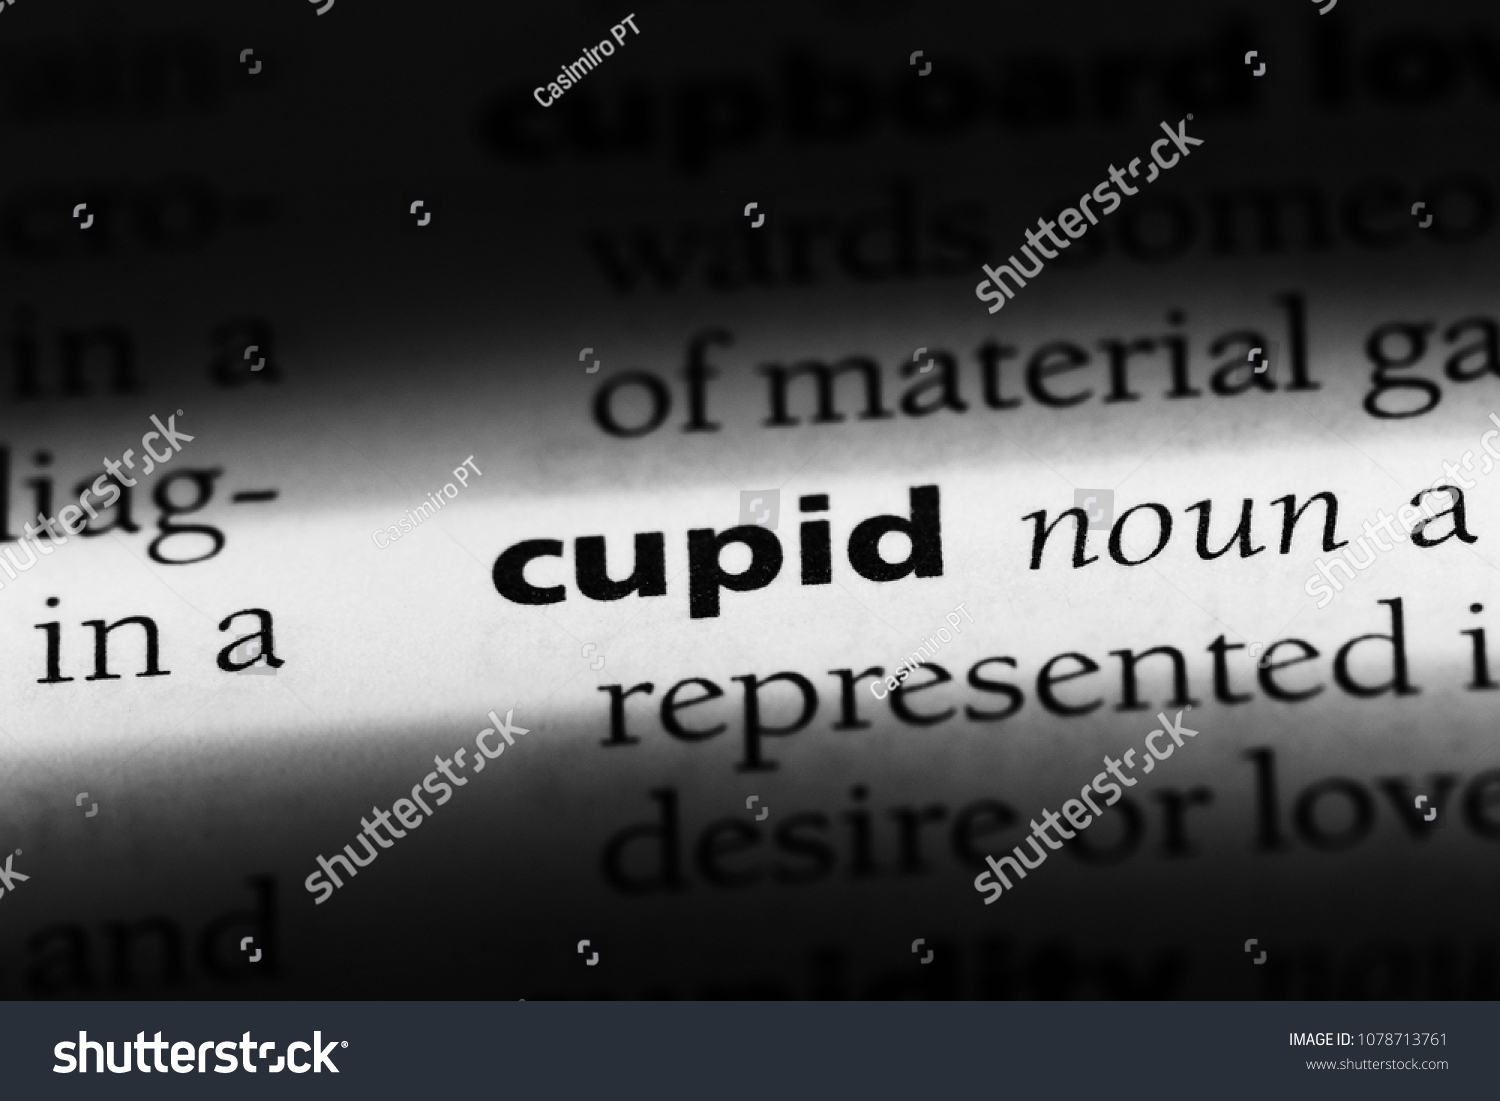 Cupid dictionary